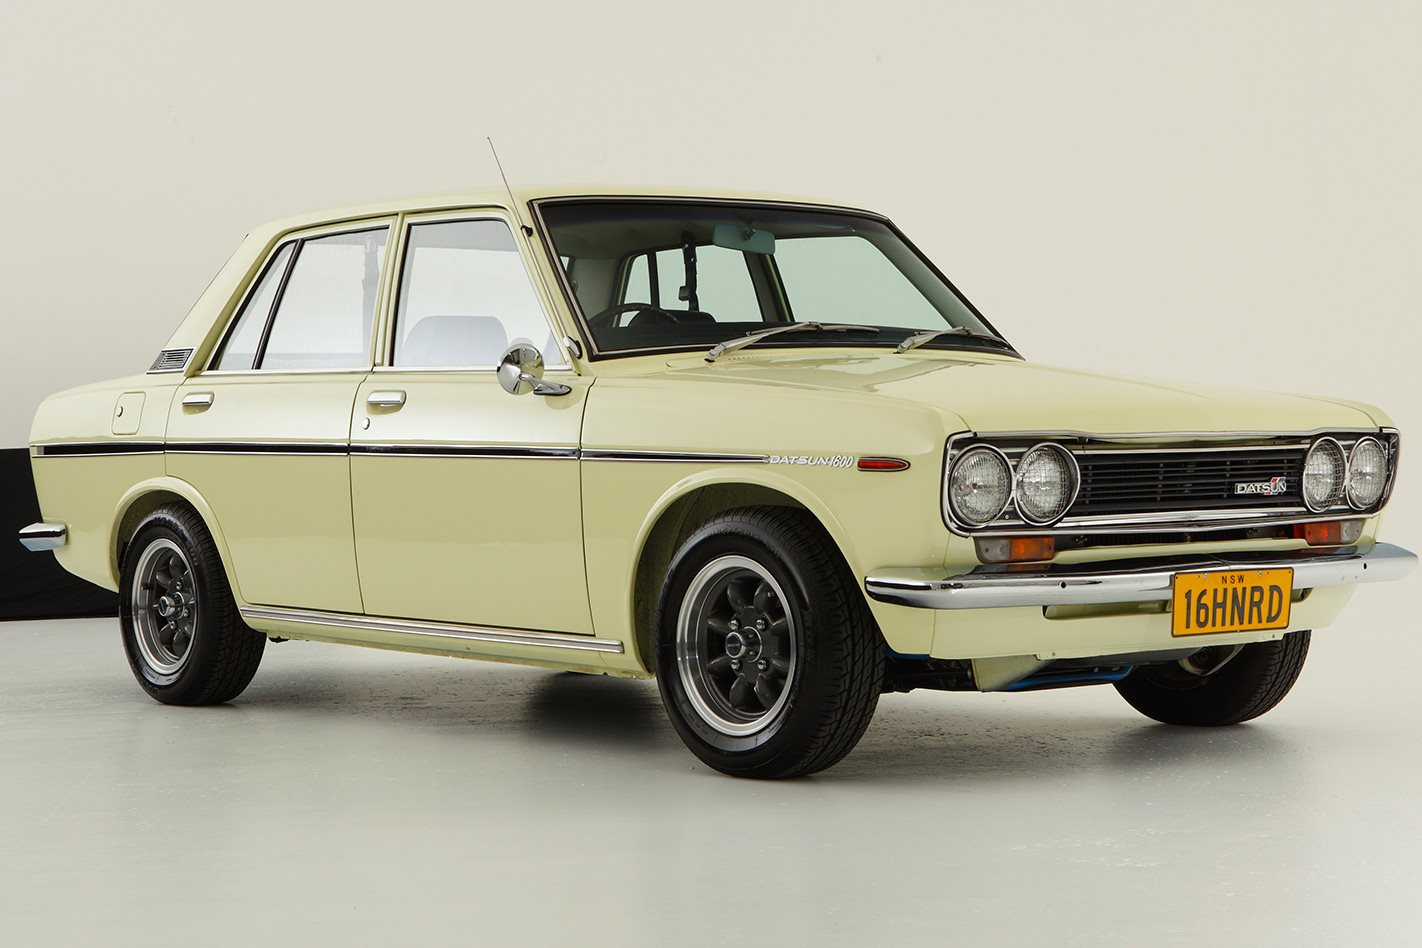 Datsun 1600 legend series showroom